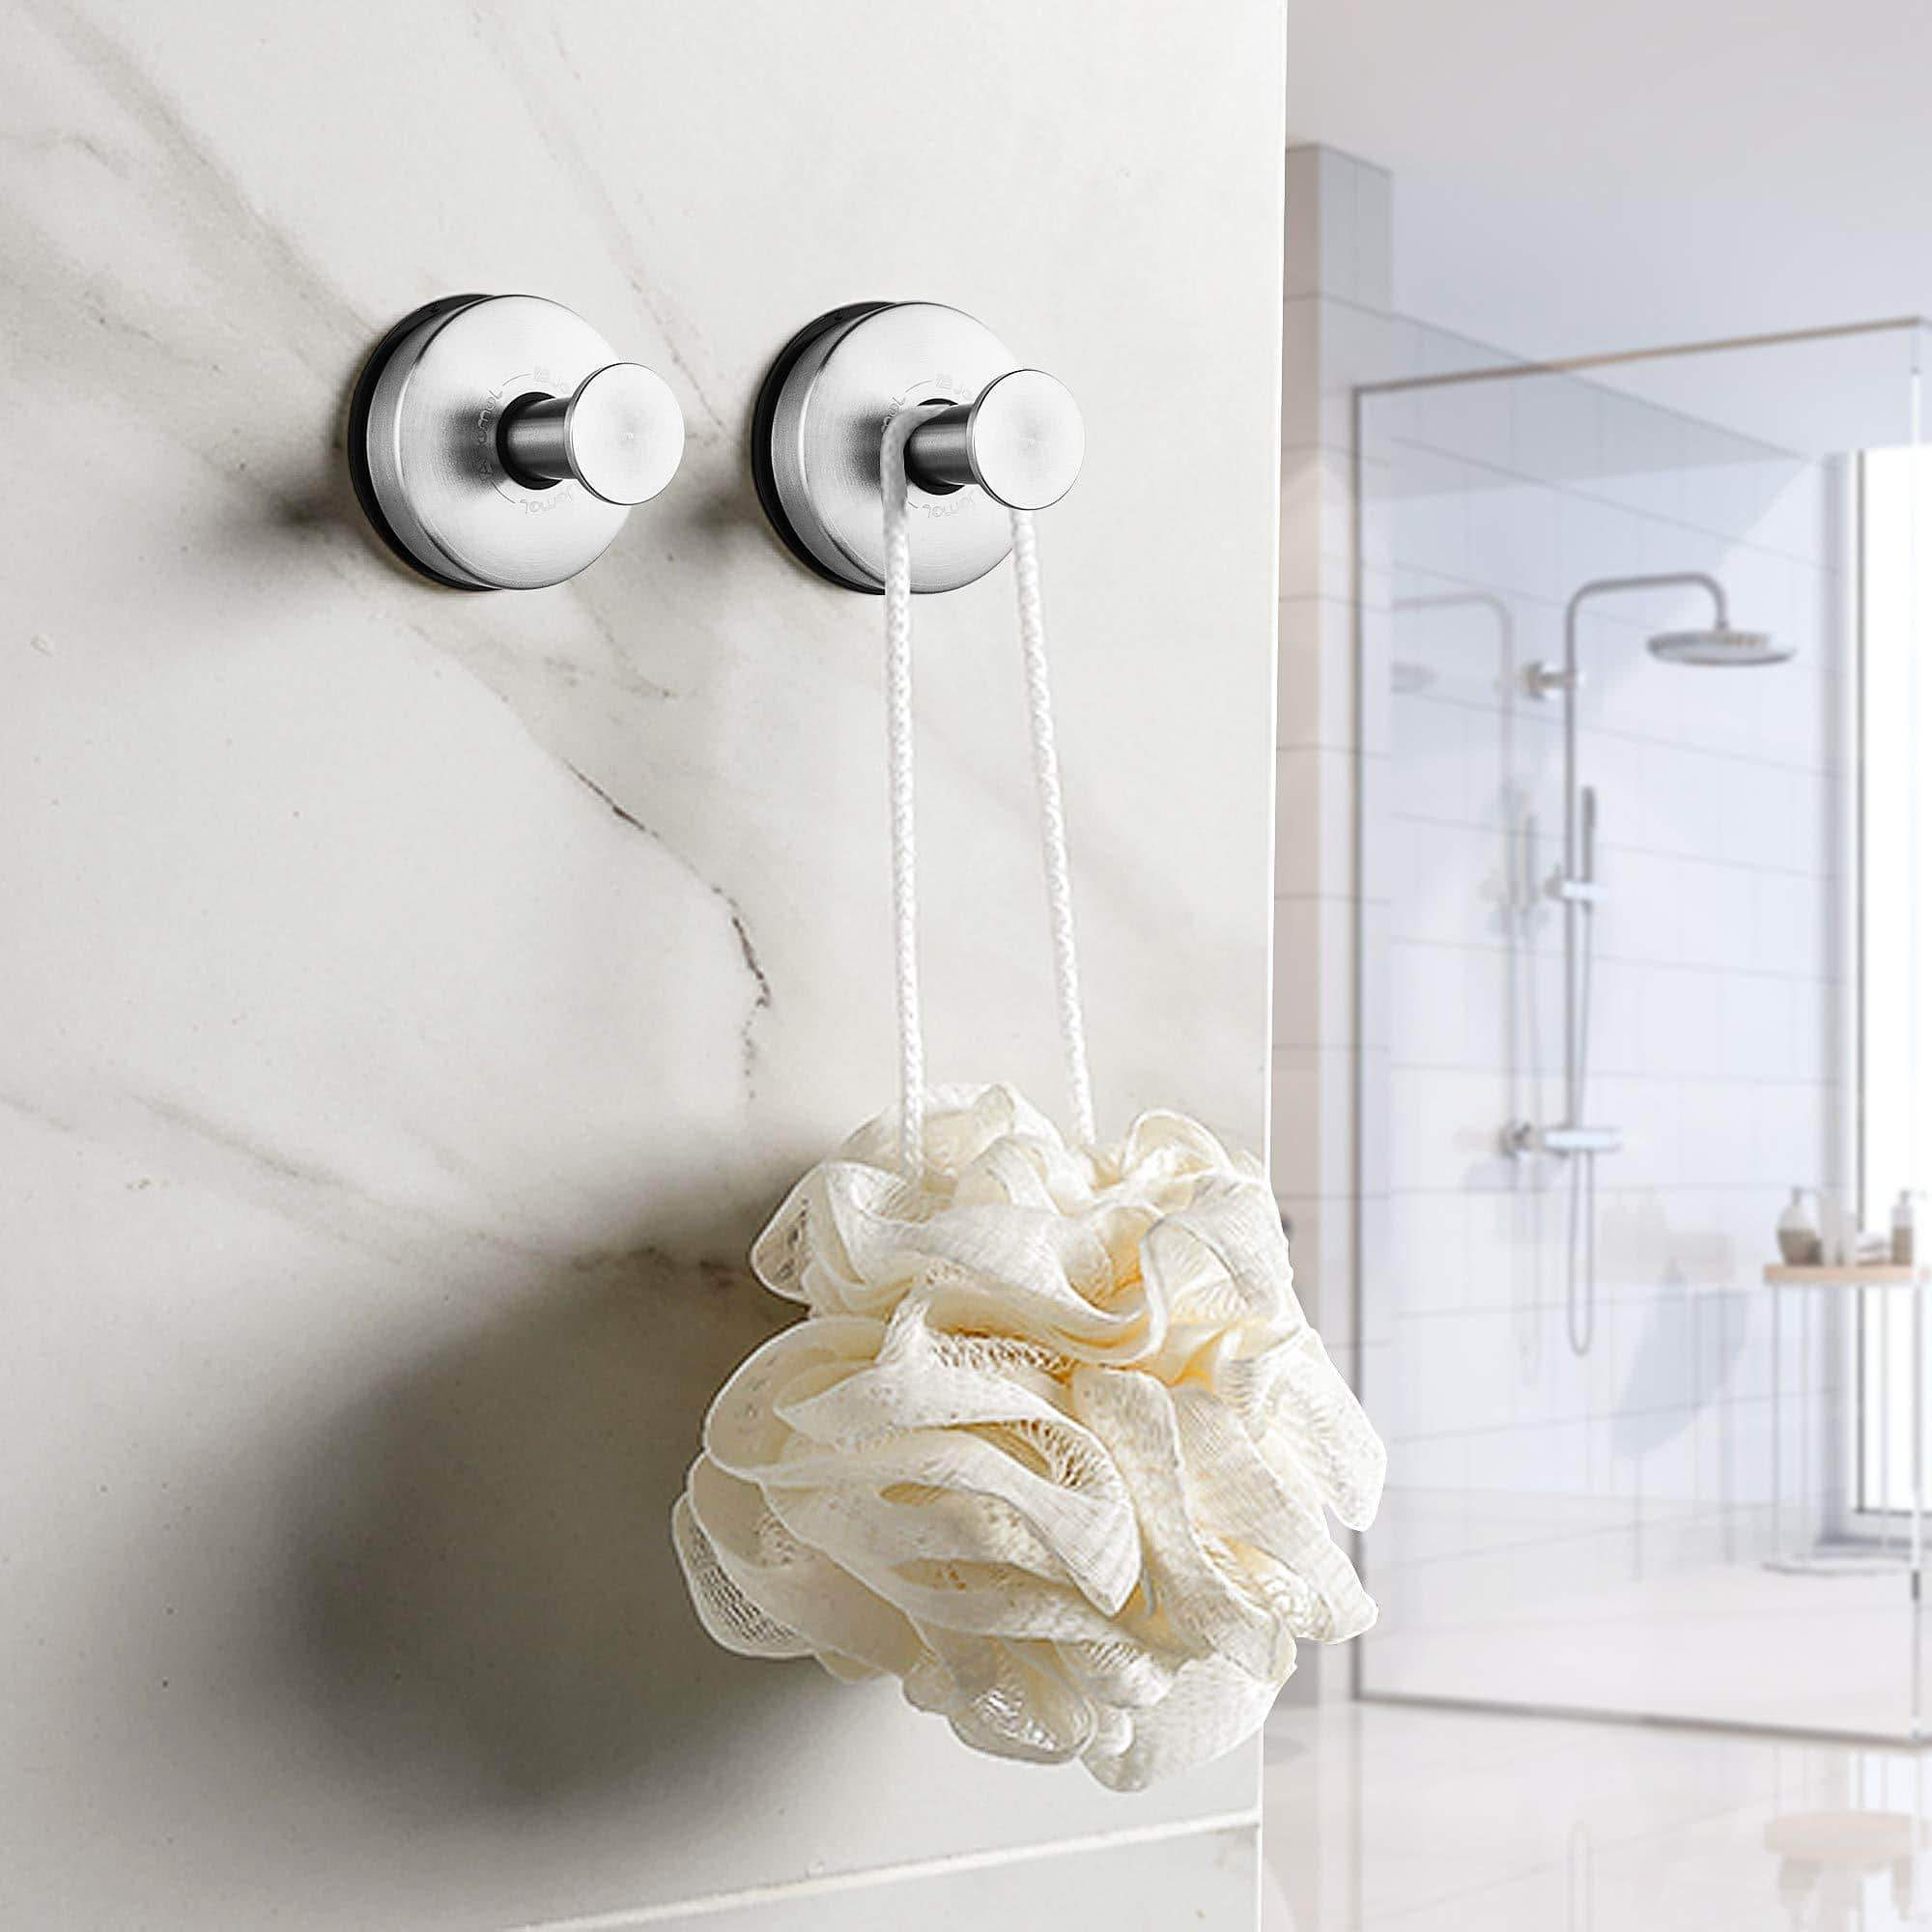 Online shopping jomola 2pcs bathroom towel hook suction cup holder utility shower hooks hanger for towel storage kitchen utensil stainless steel vacuum suction cup hooks brushed finish